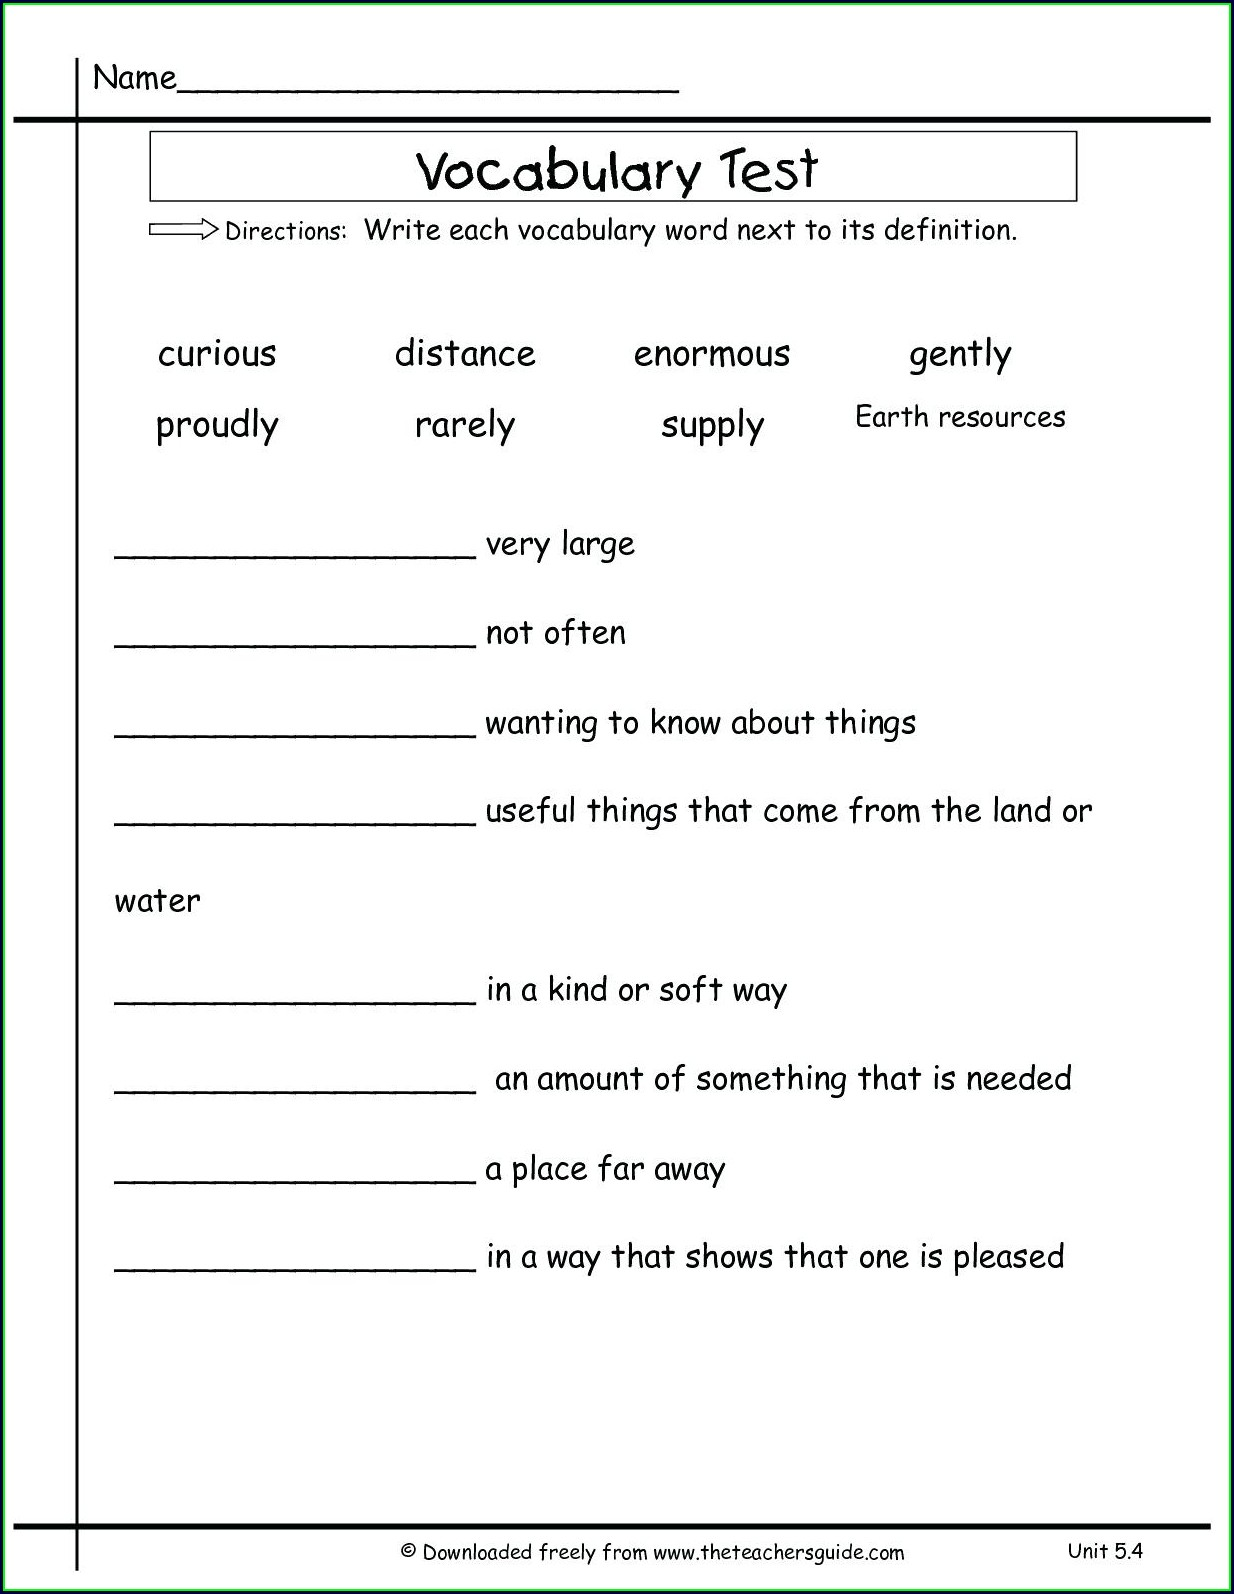 Recognizing Math Vocabulary And Definitions Worksheet